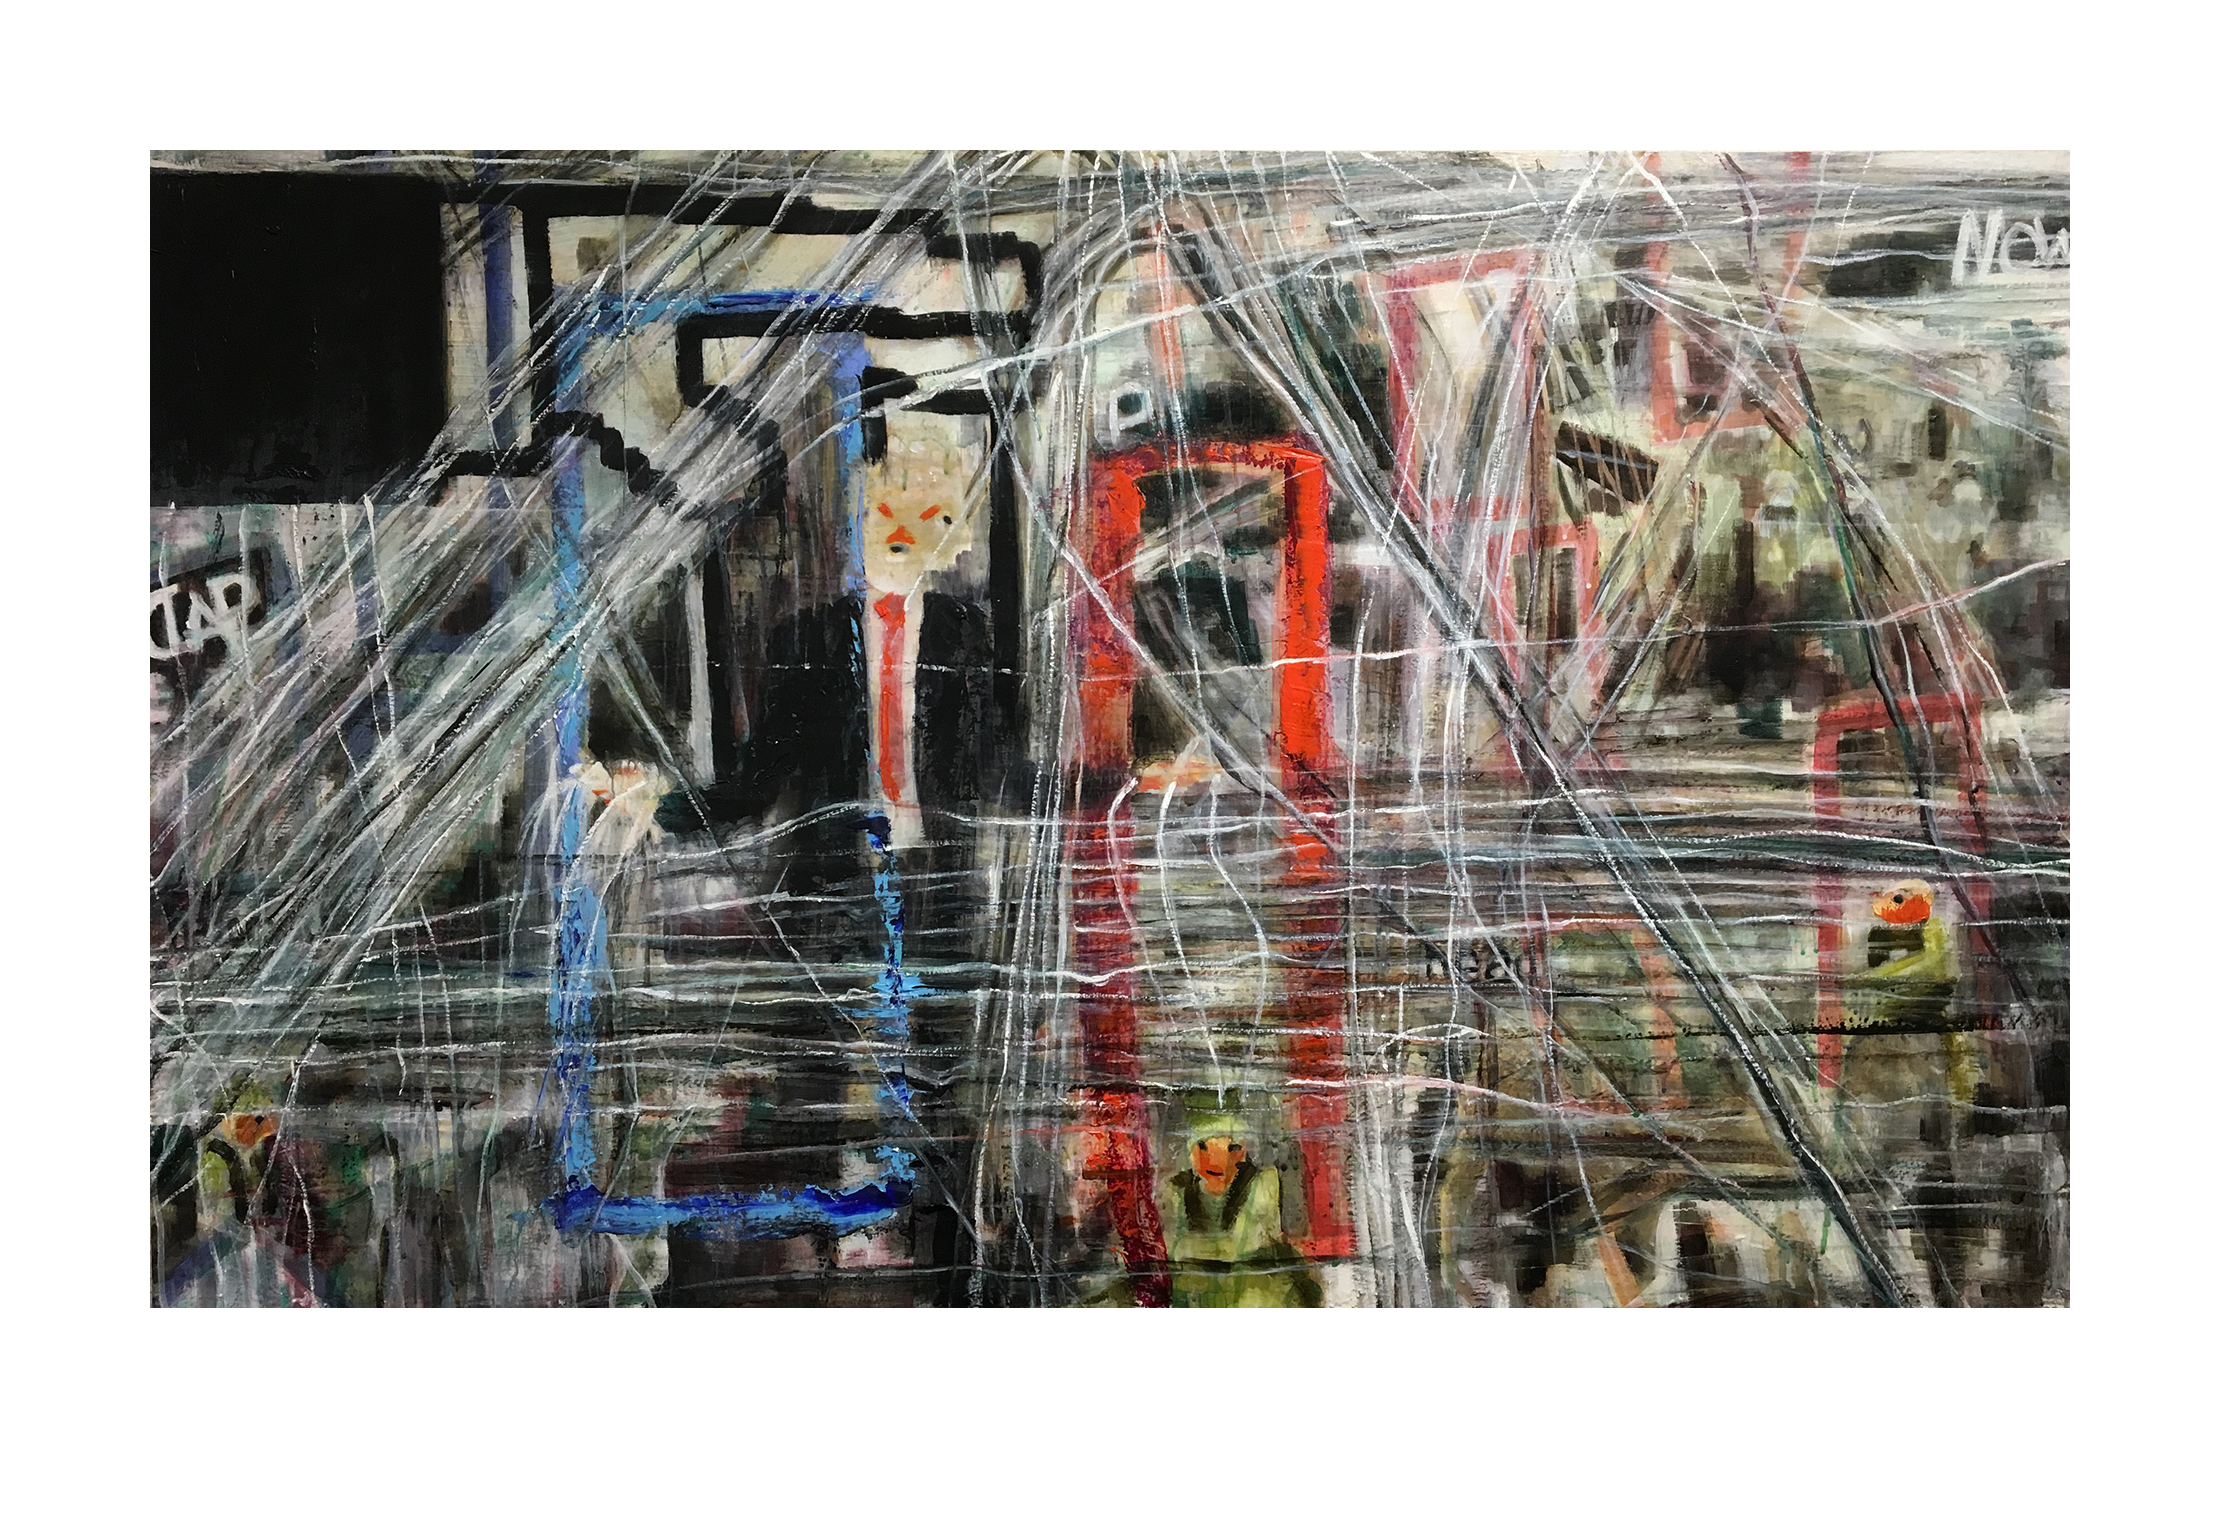 """web.  the puppet is the puppet of the puppet, and everything is interconnected. Memes of control dominate and narratives pixelate into the fray with chaotic strings connecting nothing and only restricting.   """"web,"""" 2018, oil emulsion and pigment on panel, 31"""" x 51"""""""